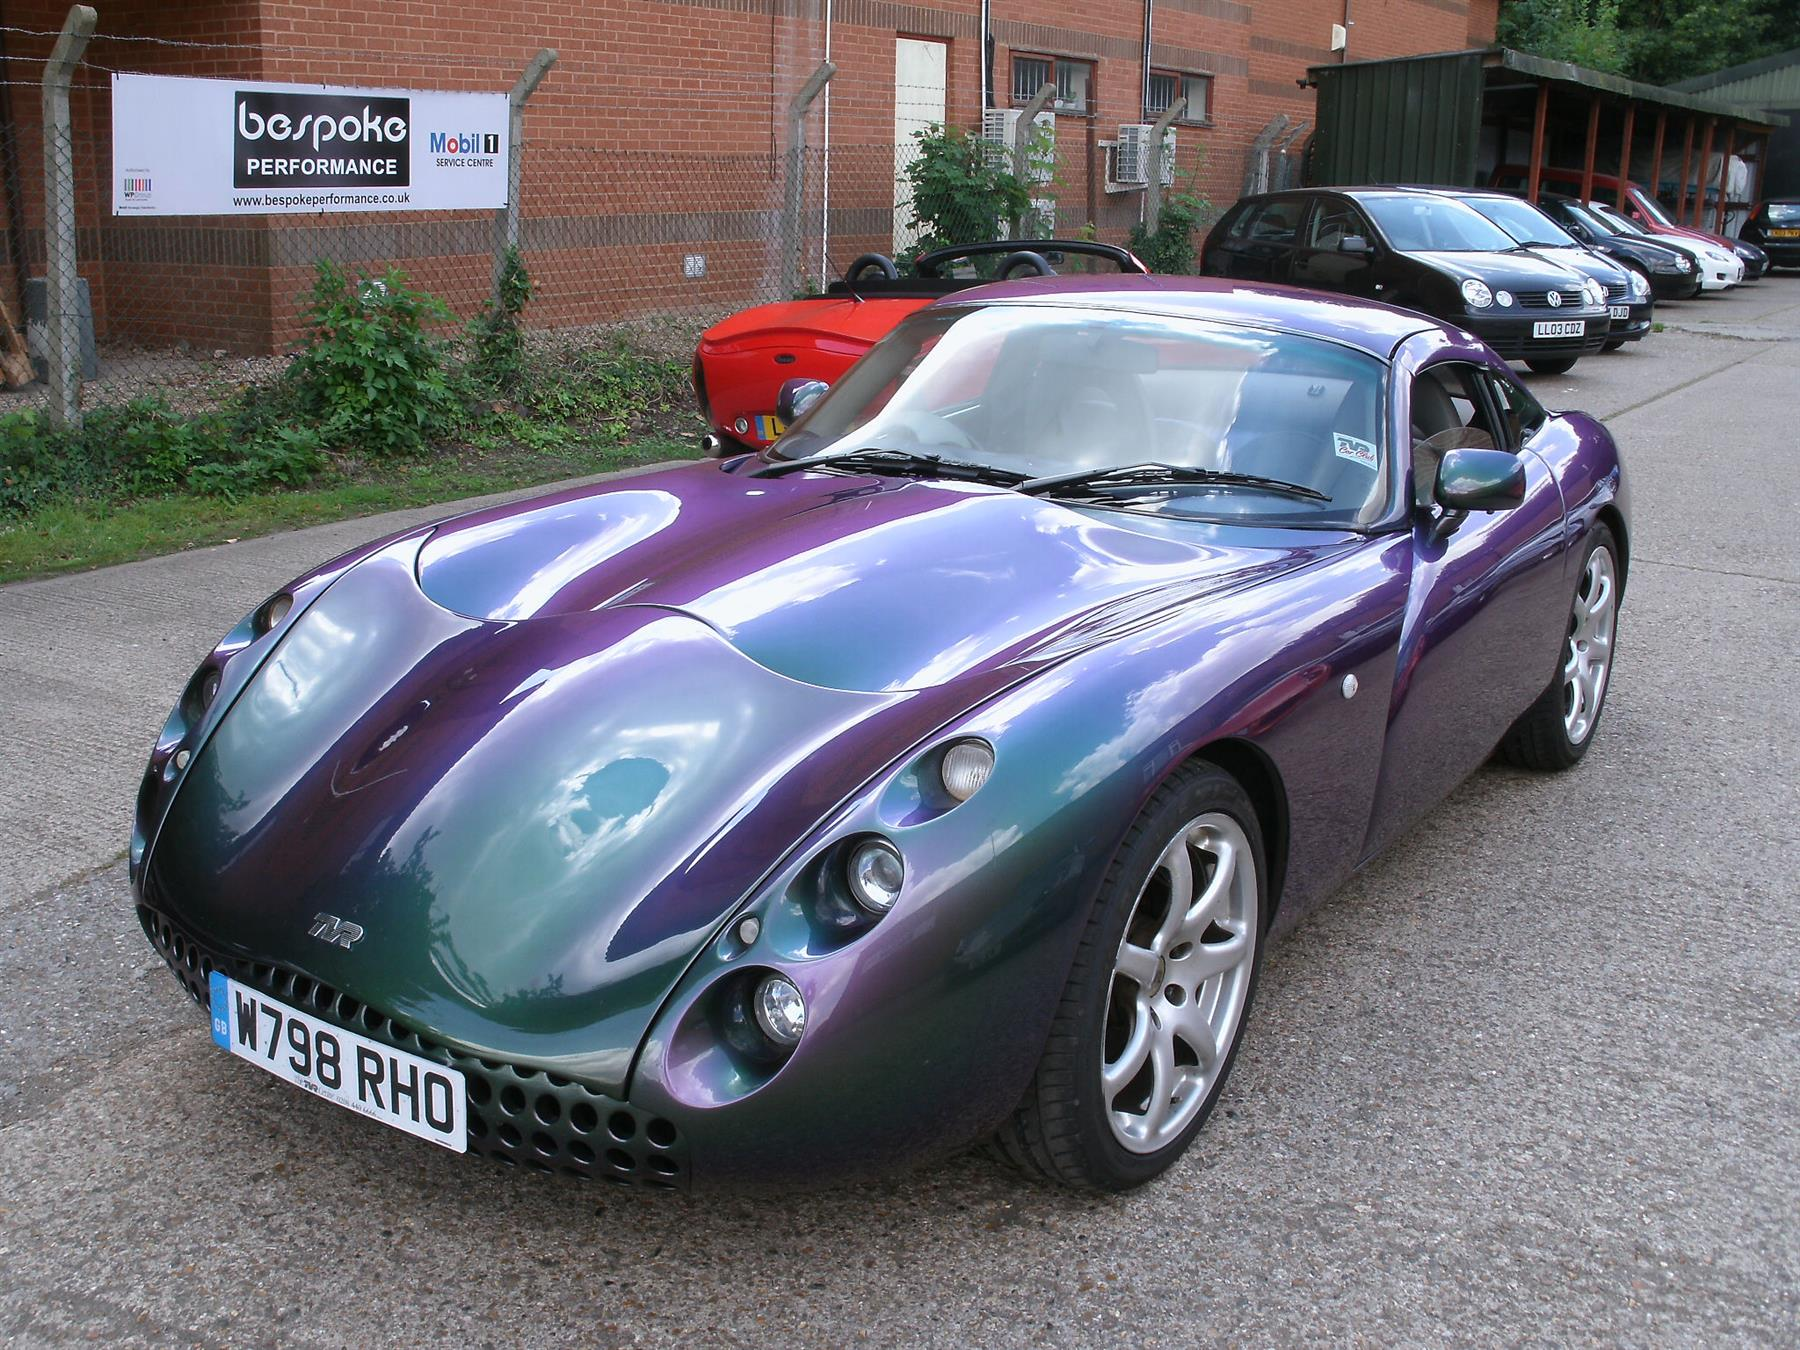 Tvr tuscan photo - 3